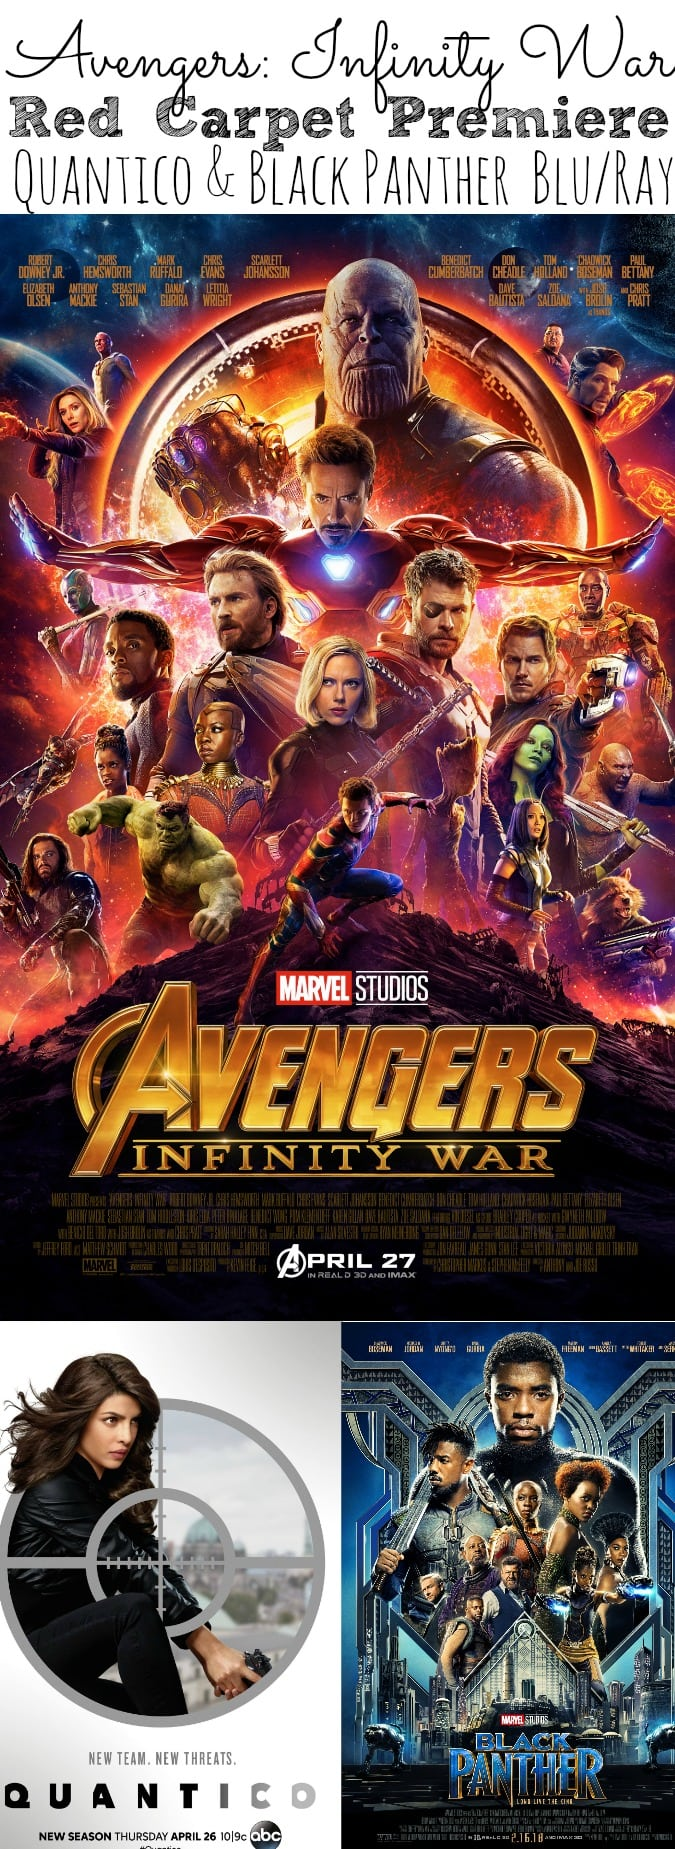 Avengers Infinity War Movie Red Carpet Permiere